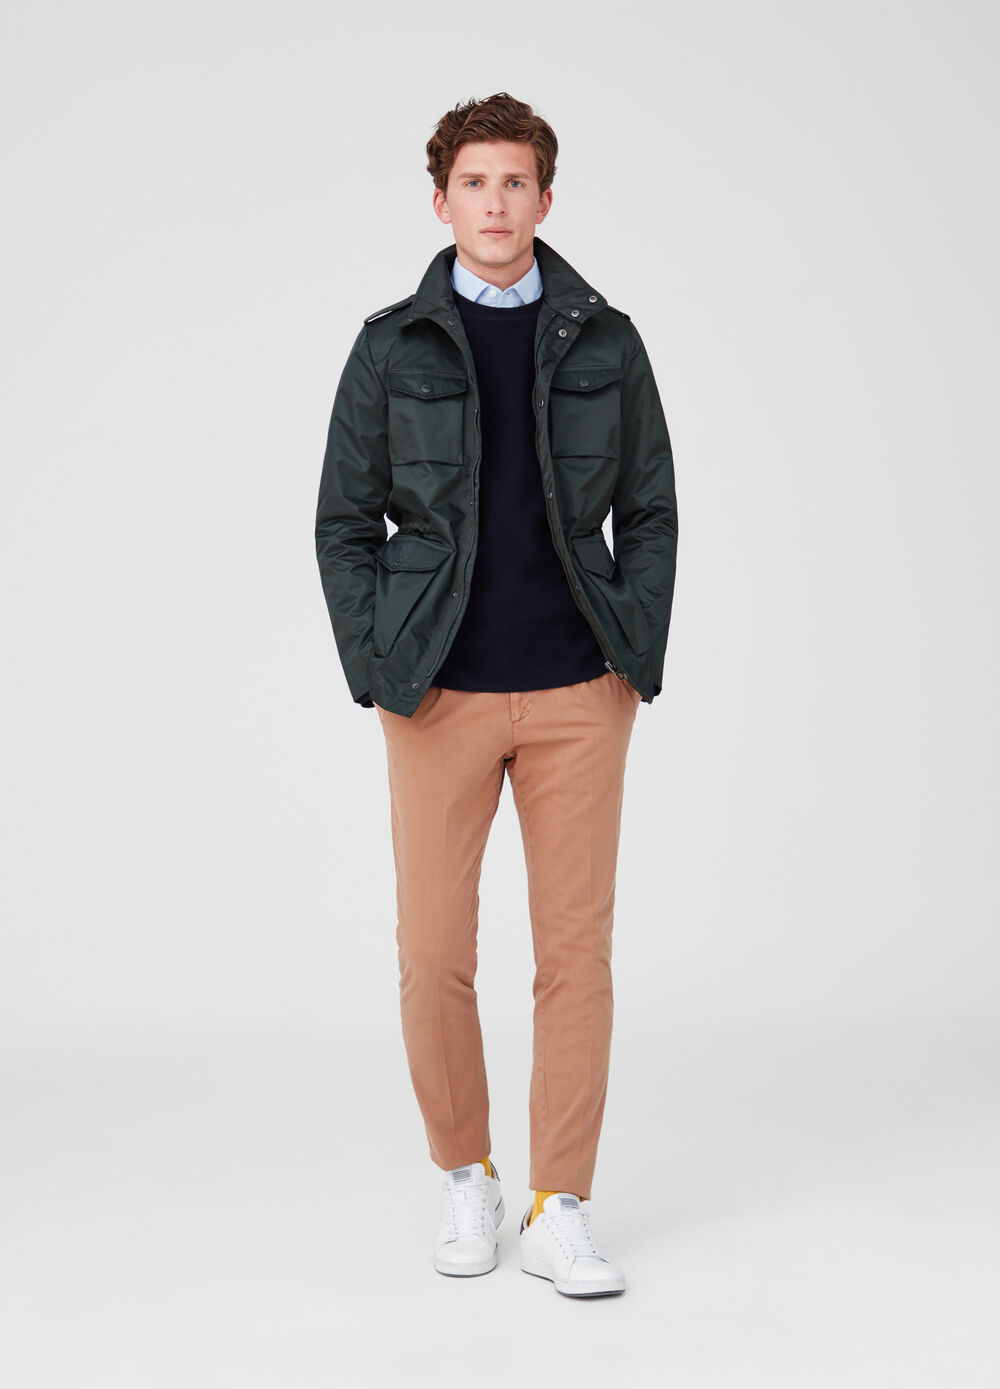 Rumford jacket with elasticated waist and pockets